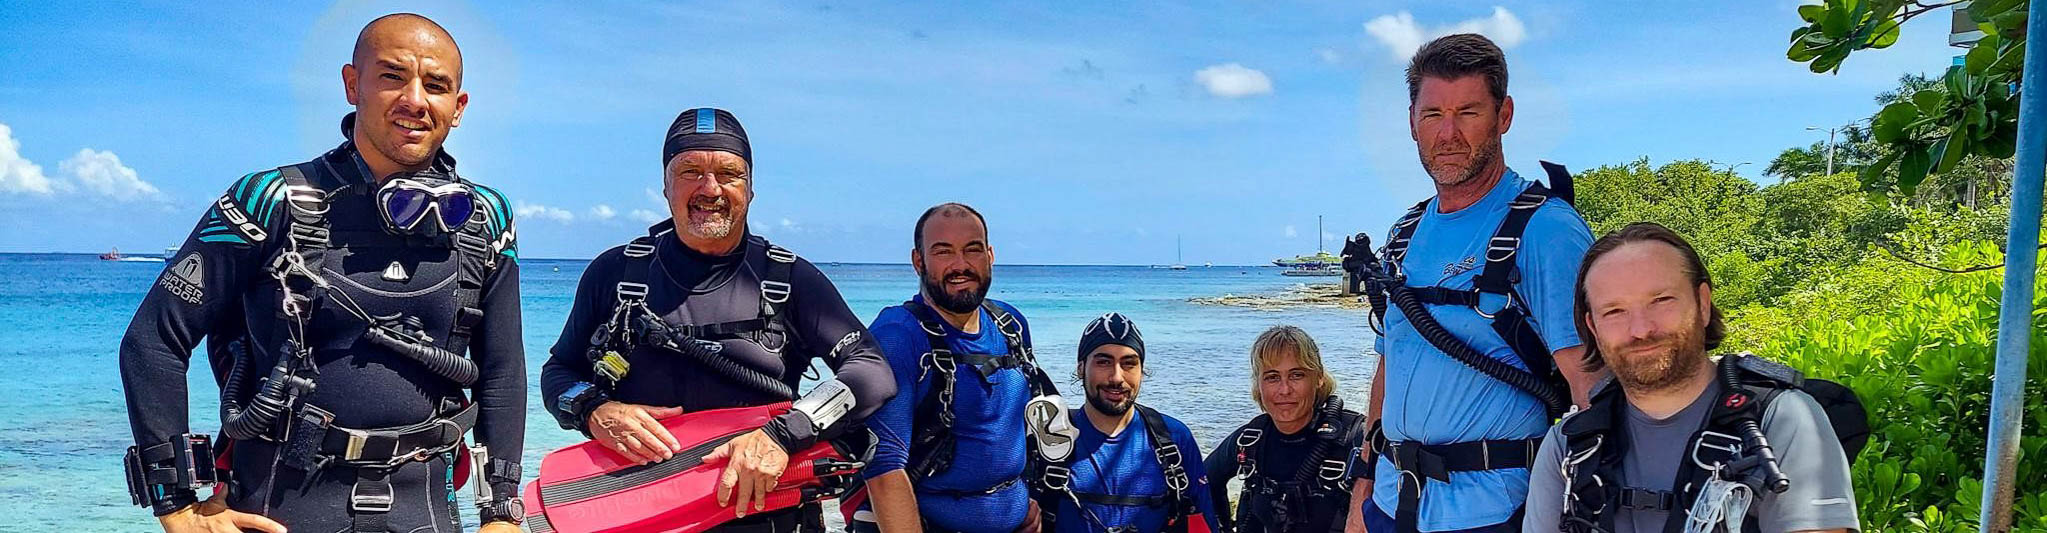 Tec group with Cozumel Dive Academy